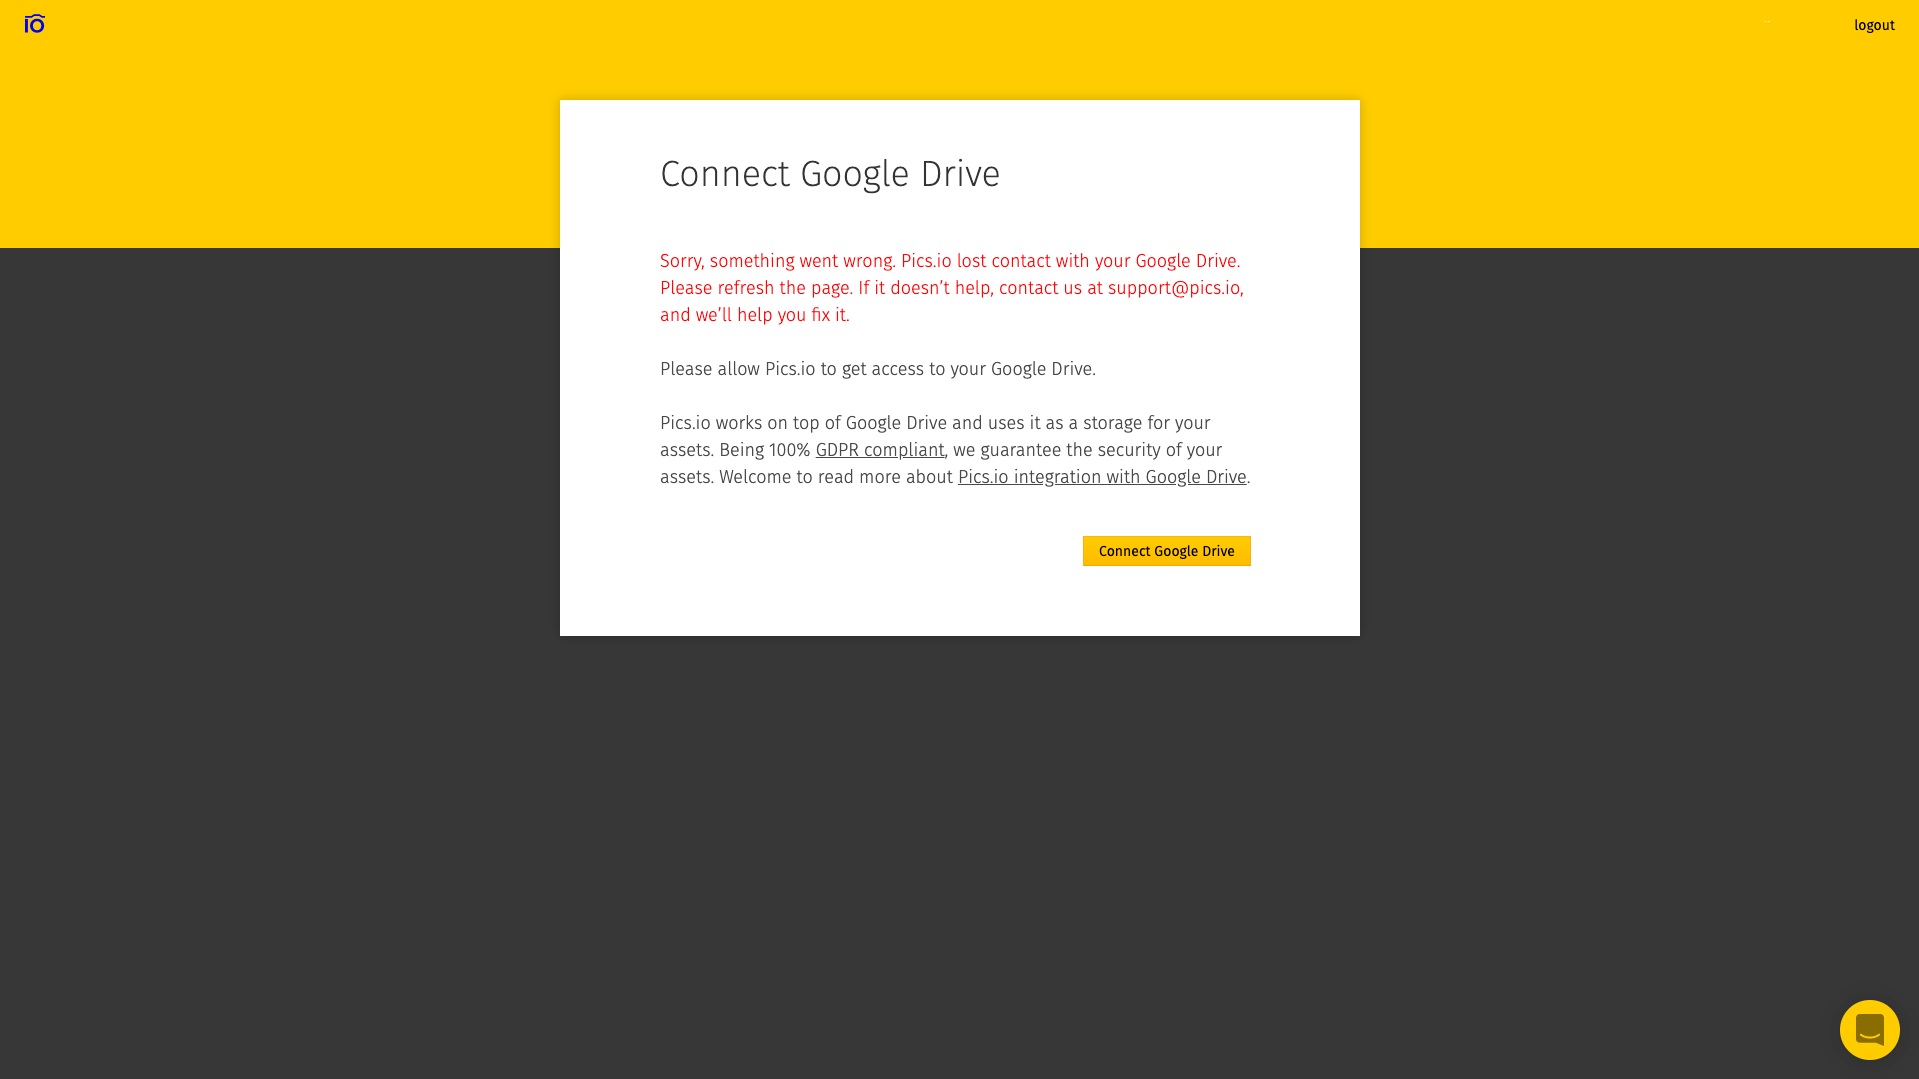 Connecting Google Drive